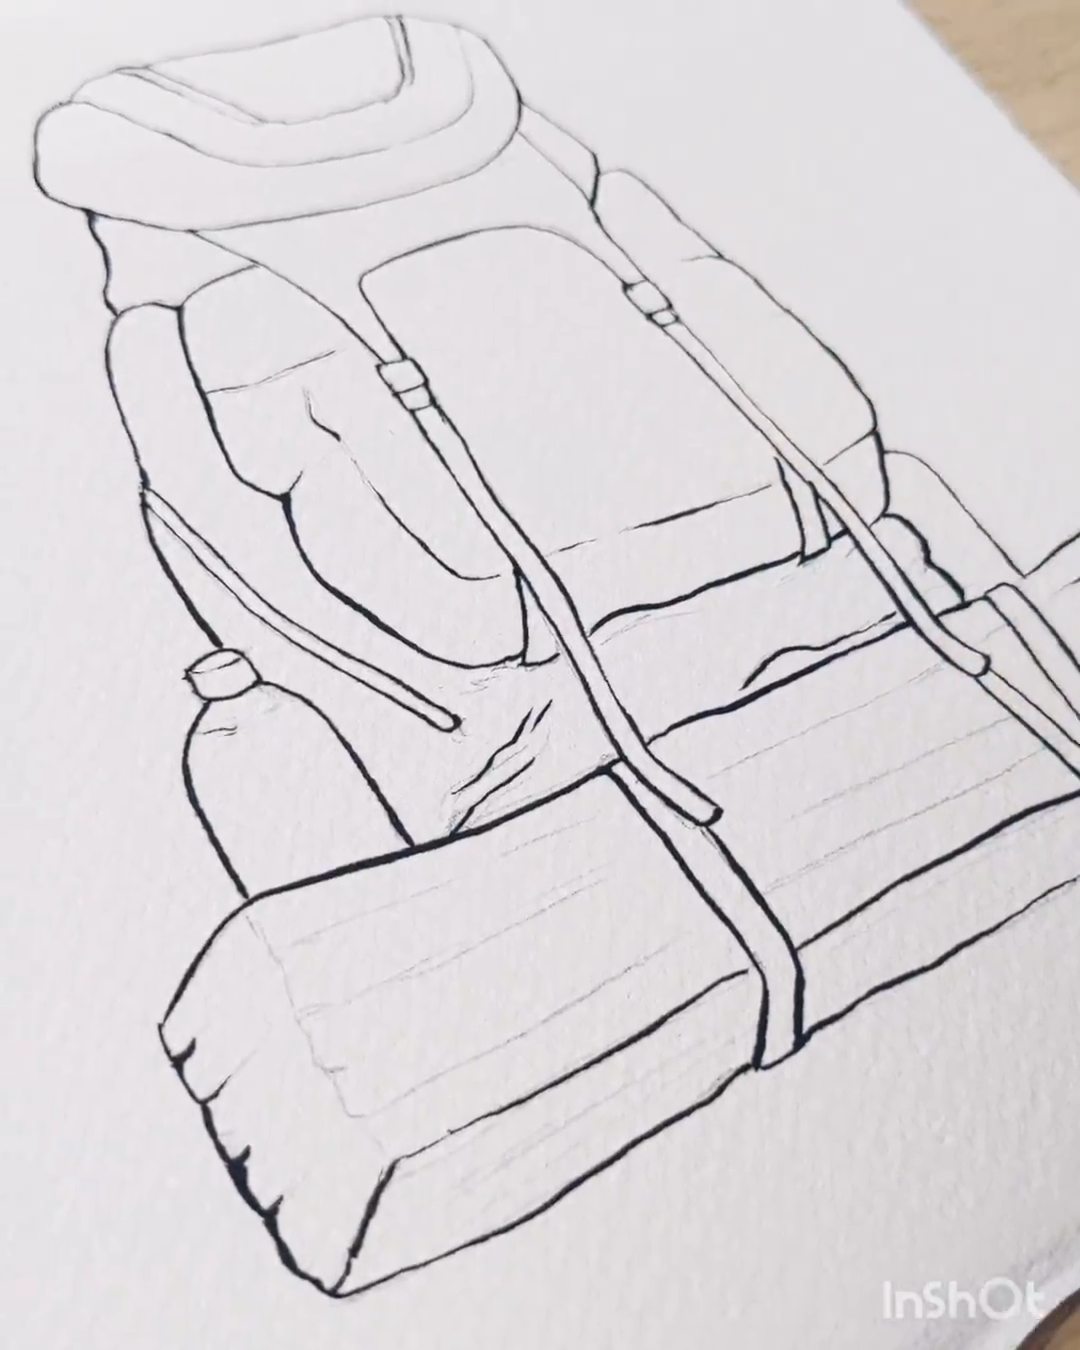 Drawing a backpack with Brush pen   Black ink draw